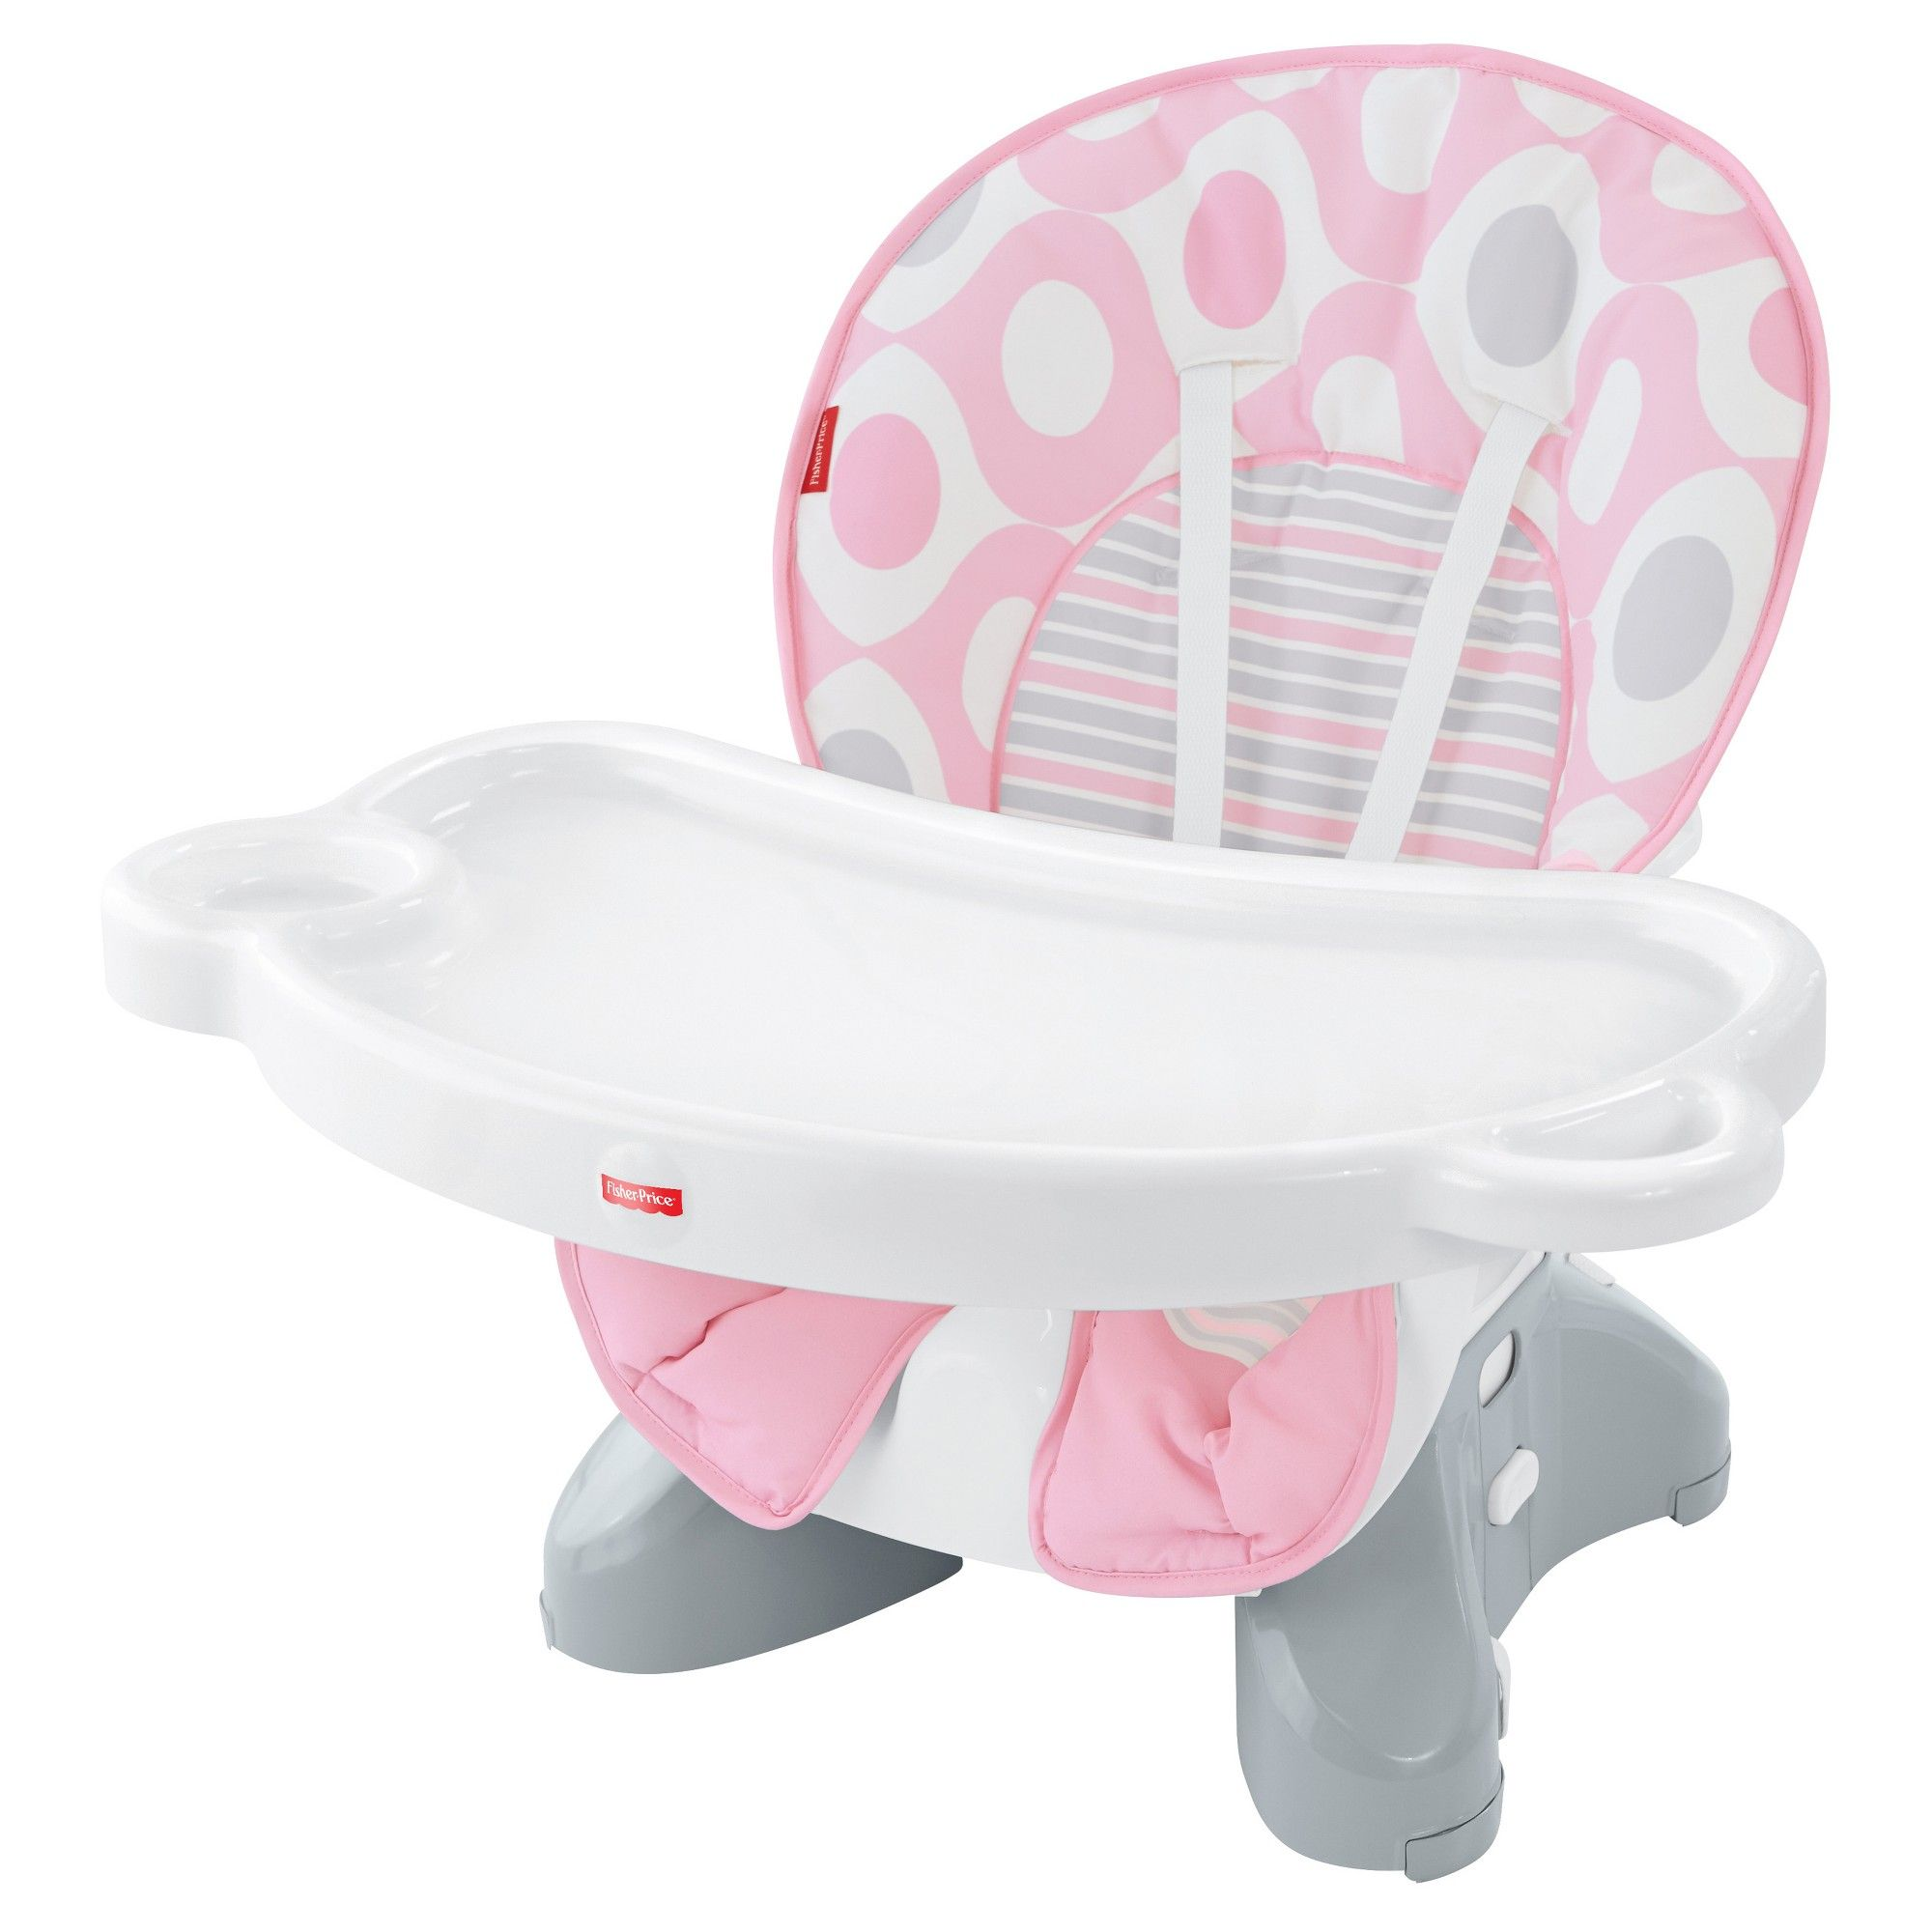 60aab2a24365 Fisher-Price SpaceSaver High Chair - Pink Ellipse